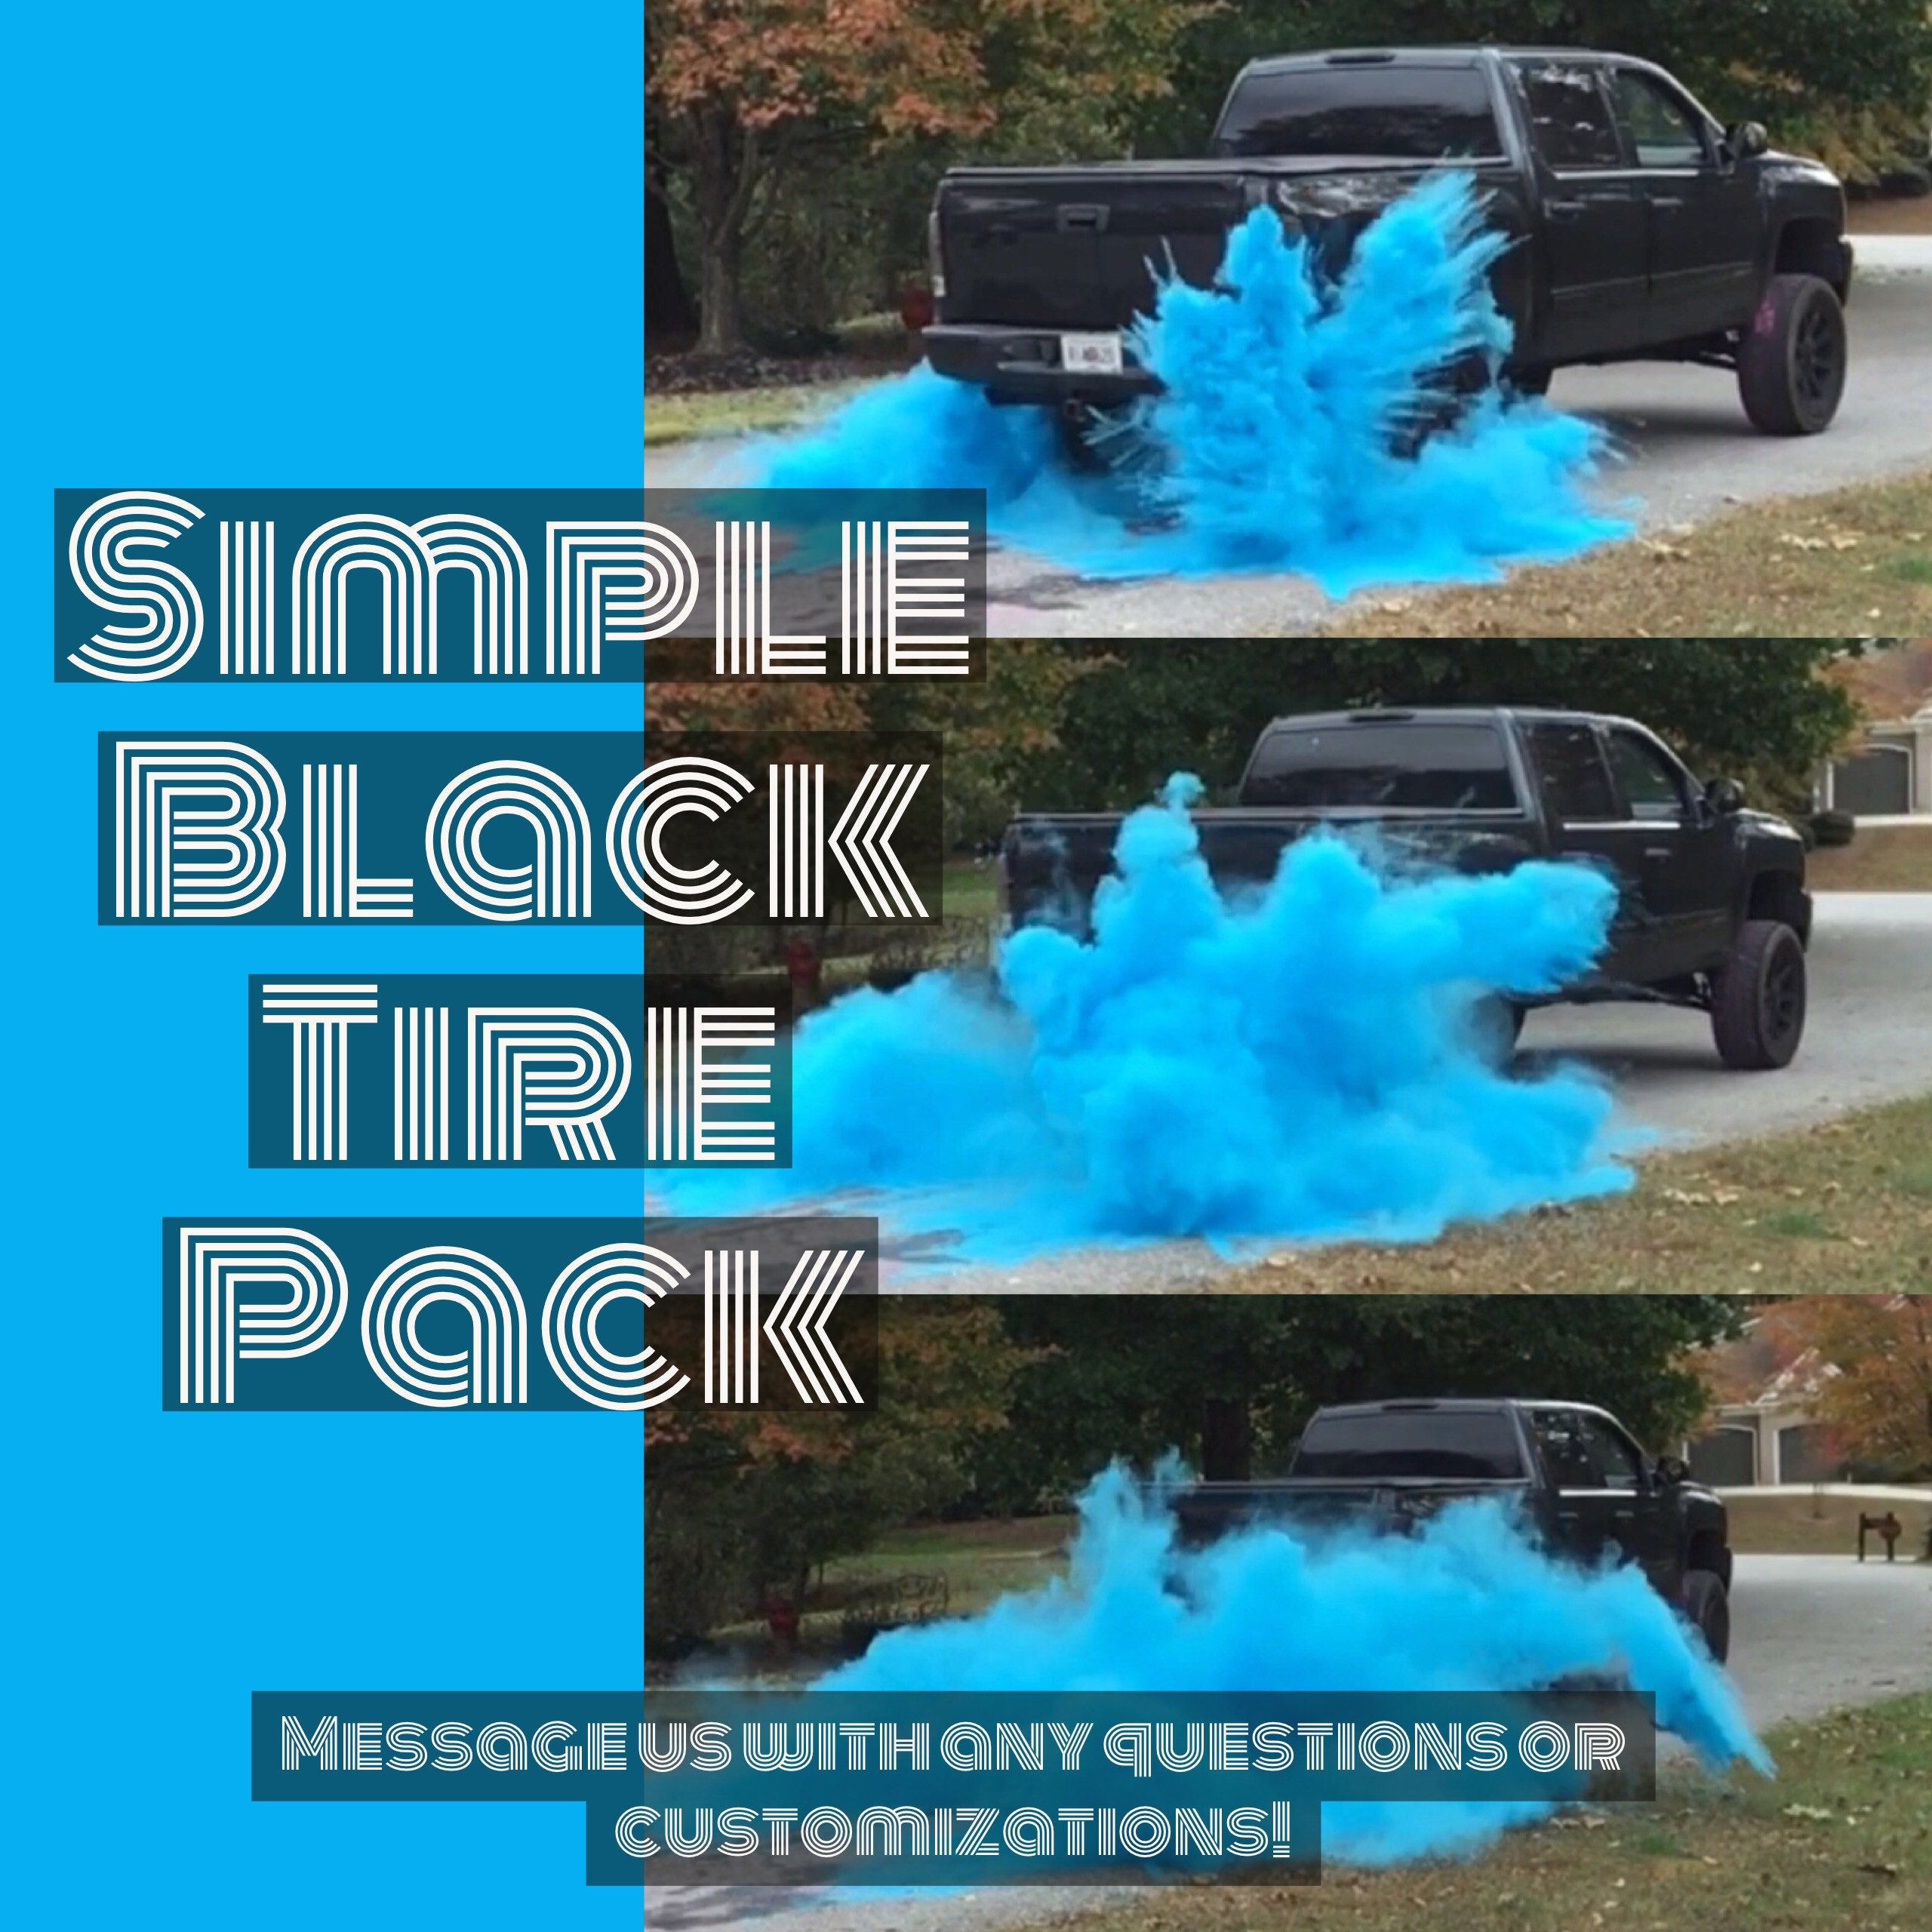 ORIGINAL BURNOUT Gender Reveal Simple Black Tire Pack for Peel Outs ...